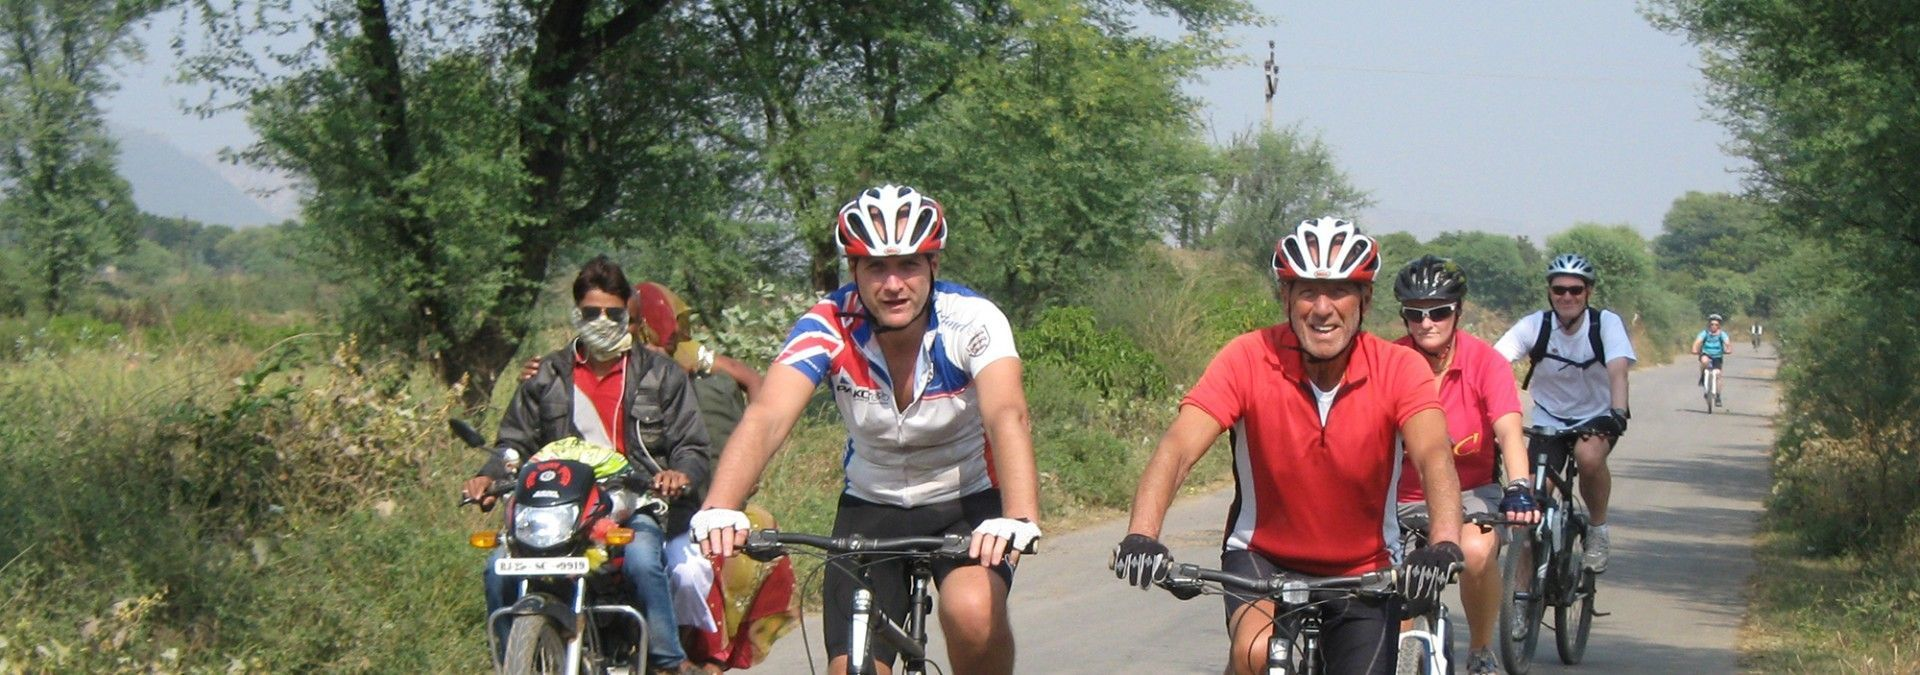 Cyclists_on_Rajasthan_Cycle_Challenge.jpg